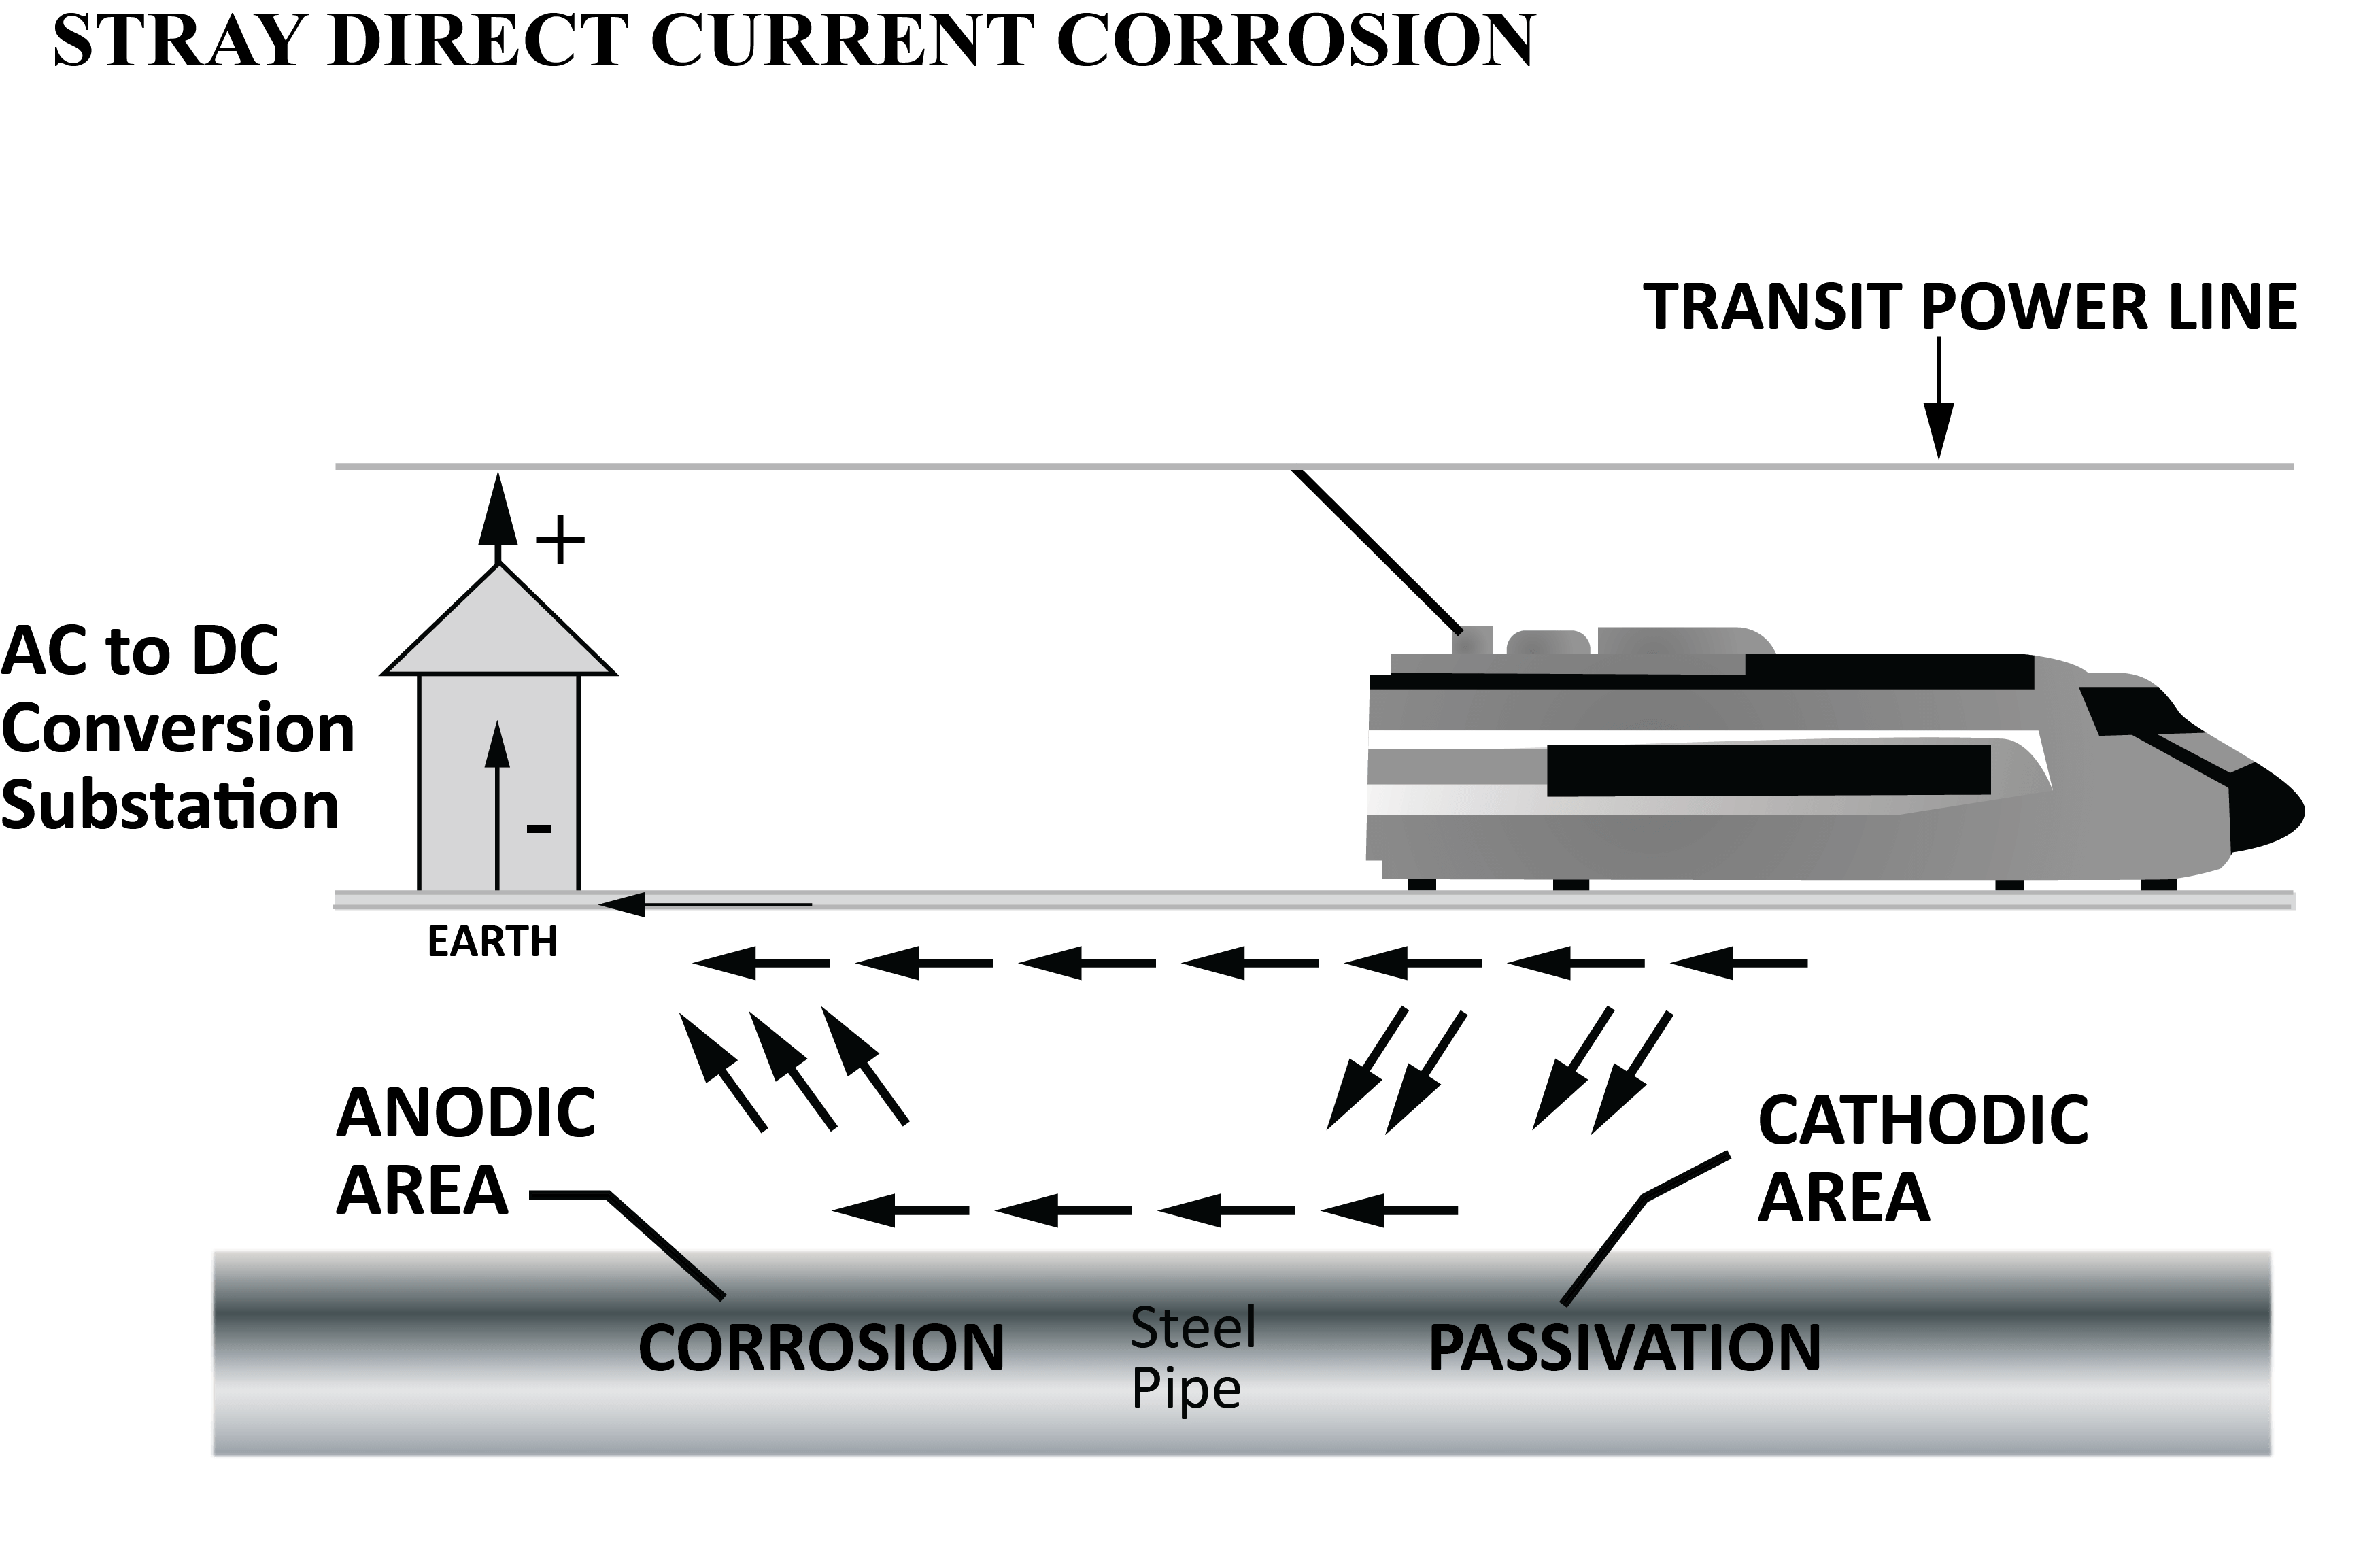 Figure 2. Stray current corrosion from a DC transit system.